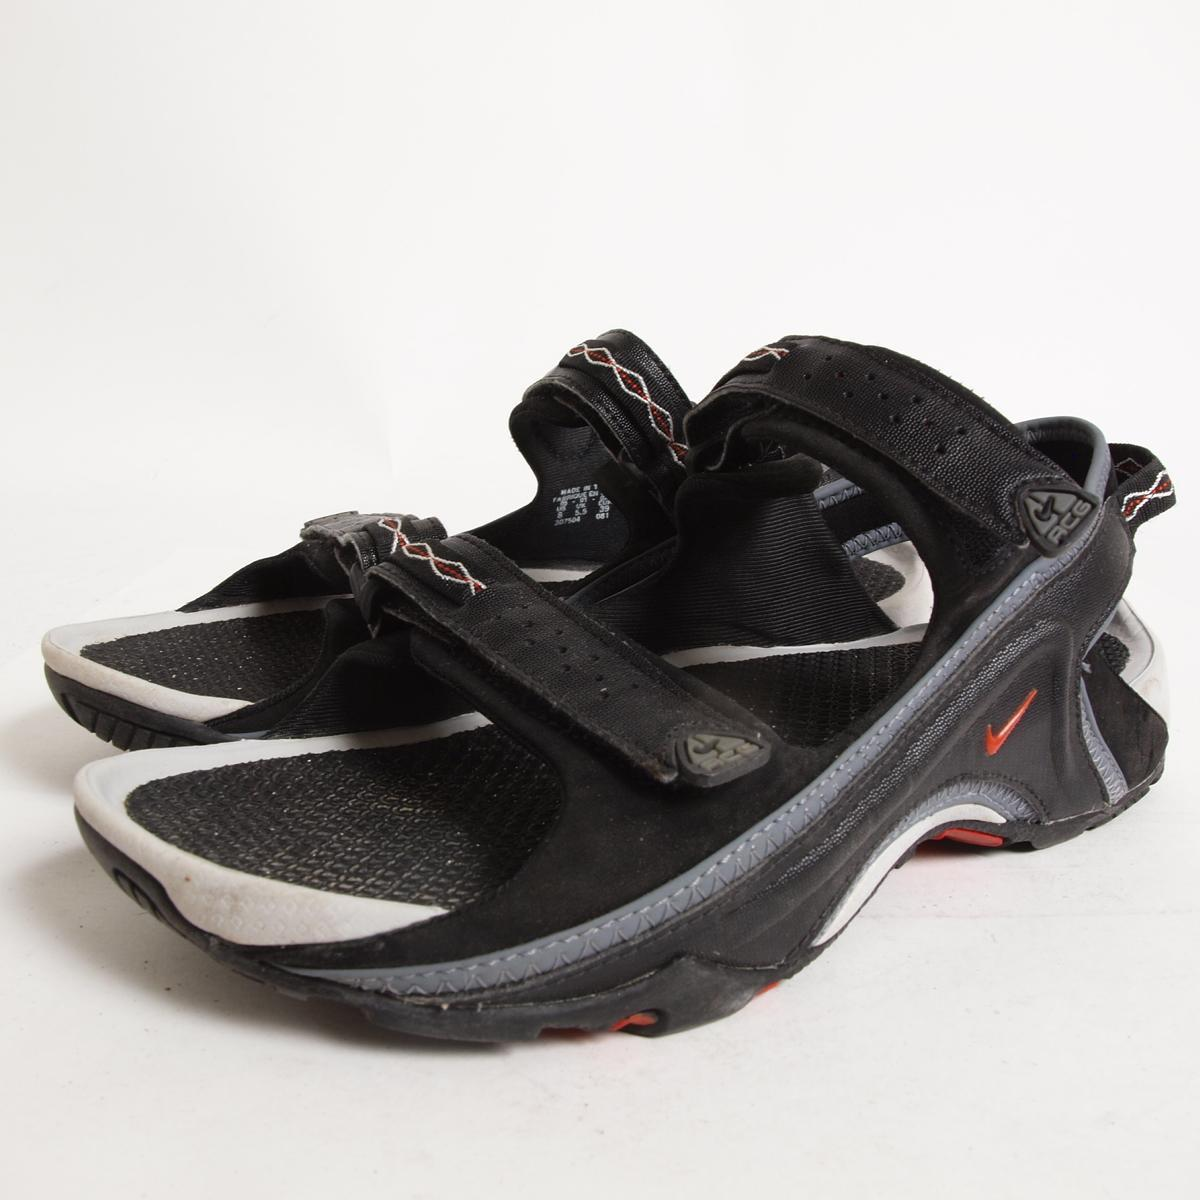 3fe36eed3a4753 ... slipper beach shoes wading c9393 da496  where to buy nike acg sandals  df9c9 0e47a where to buy nike acg sandals df9c9 0e47a  where can i buy nike  acg ...